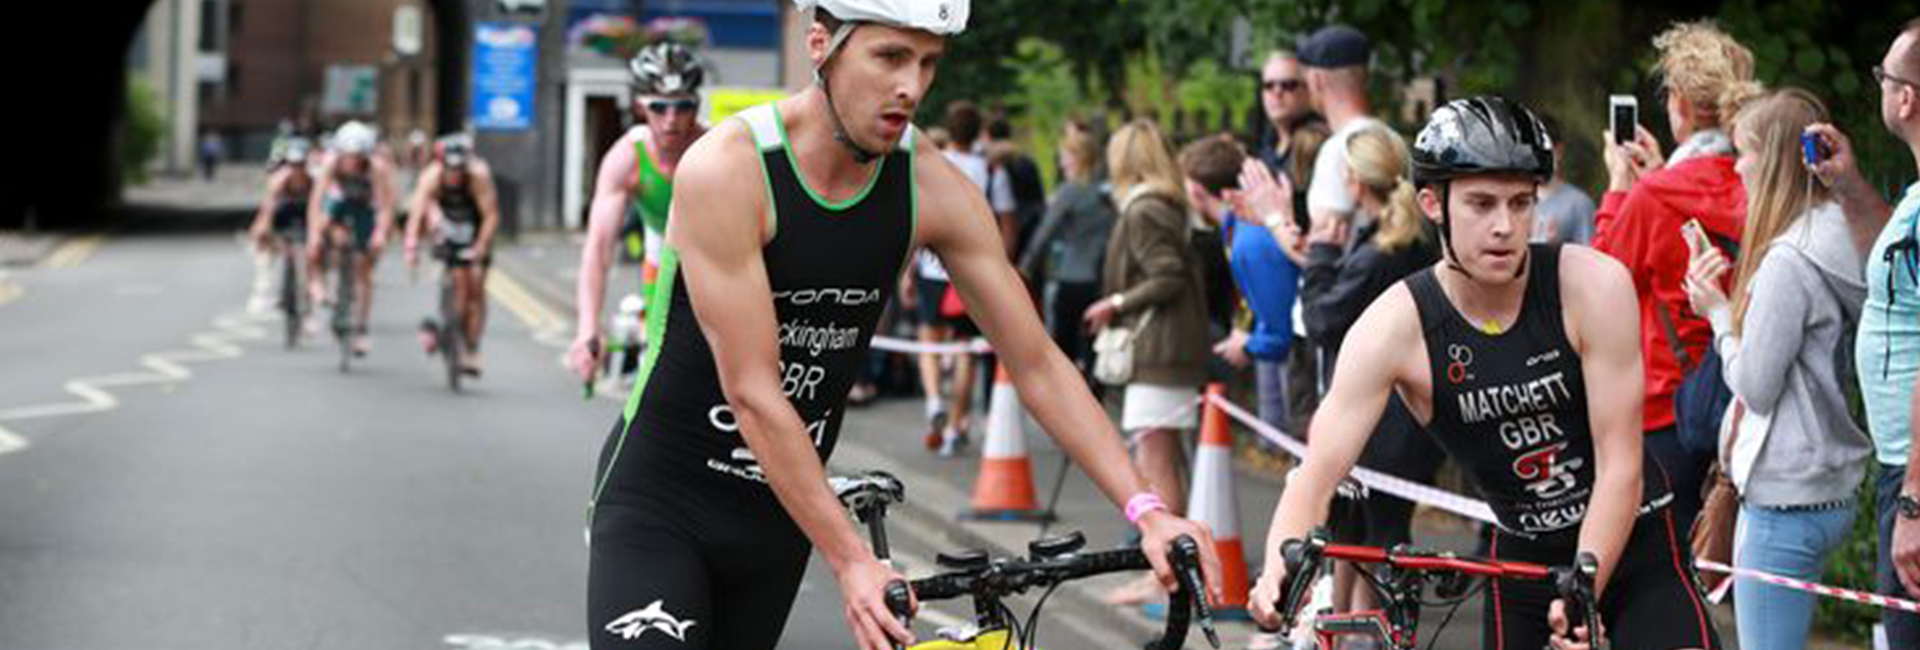 Two Cyclists taking part in a triathlon race